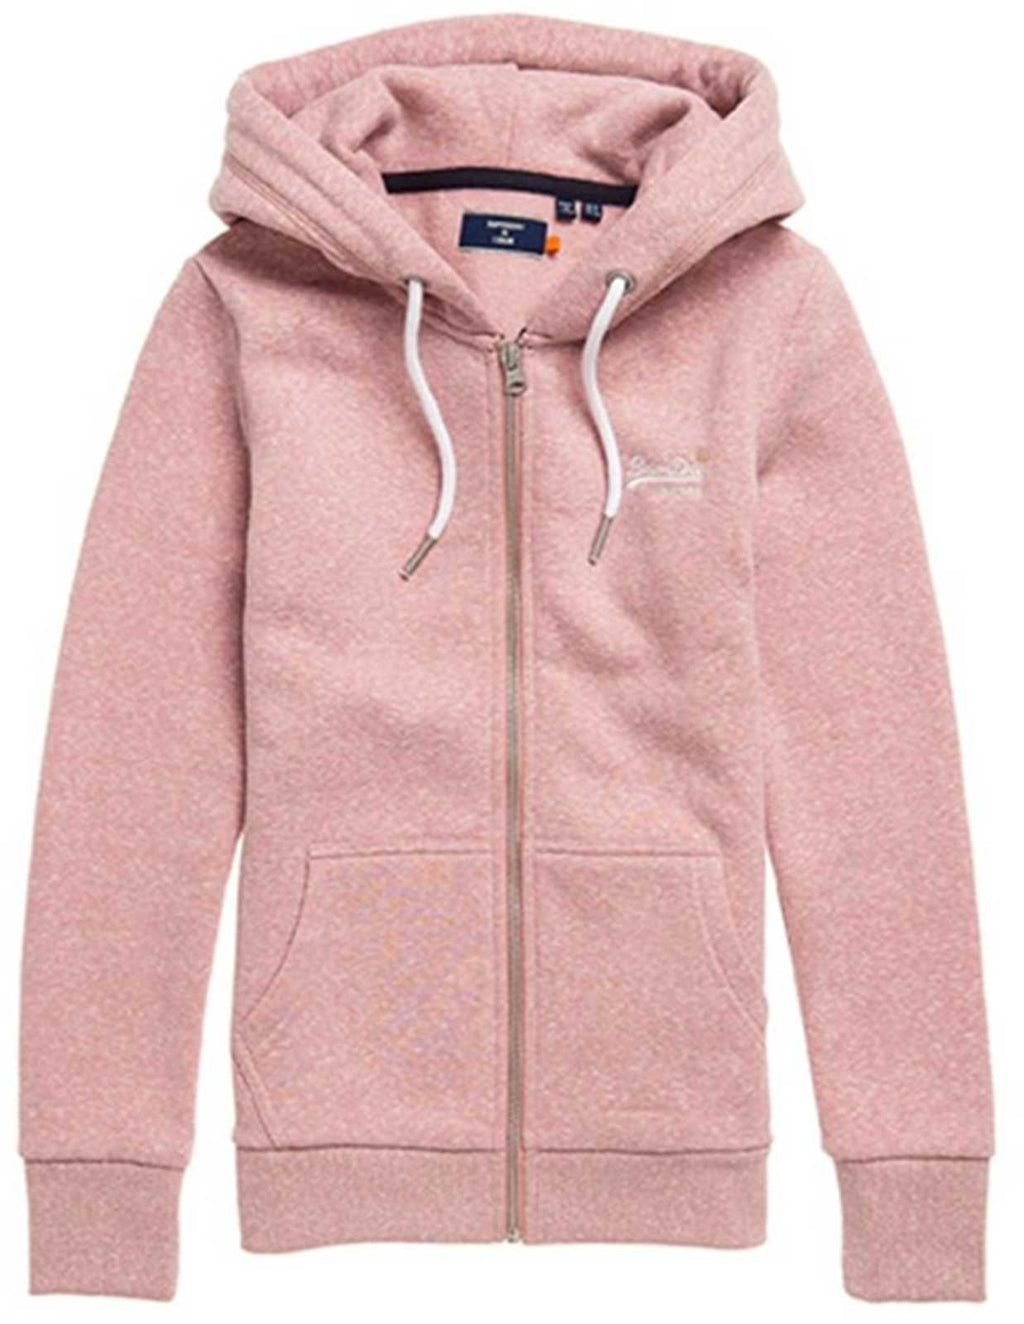 Superdry Orange Label Zip Hoodie	Sandy Pink Snowy